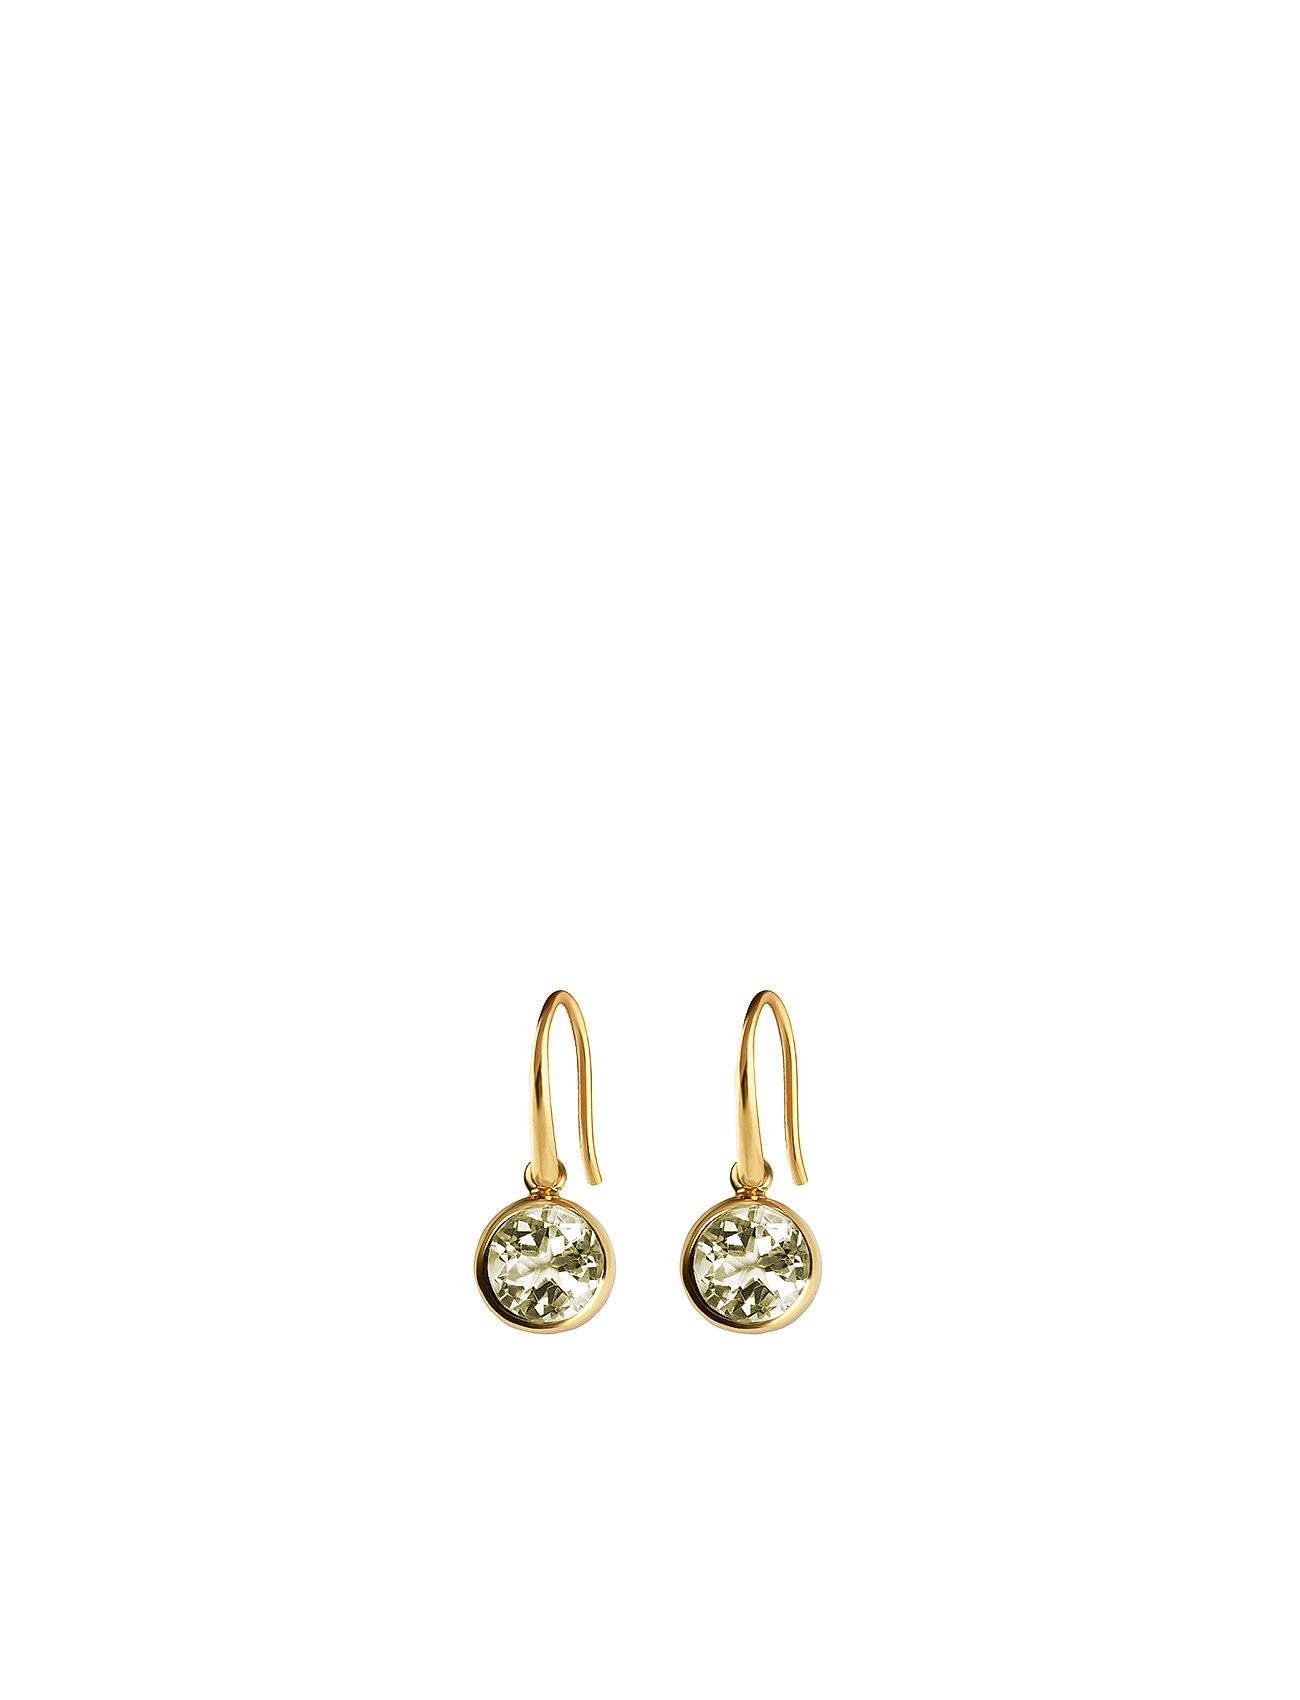 Syster P Lone Star Earrings Green Amethyst, Gold